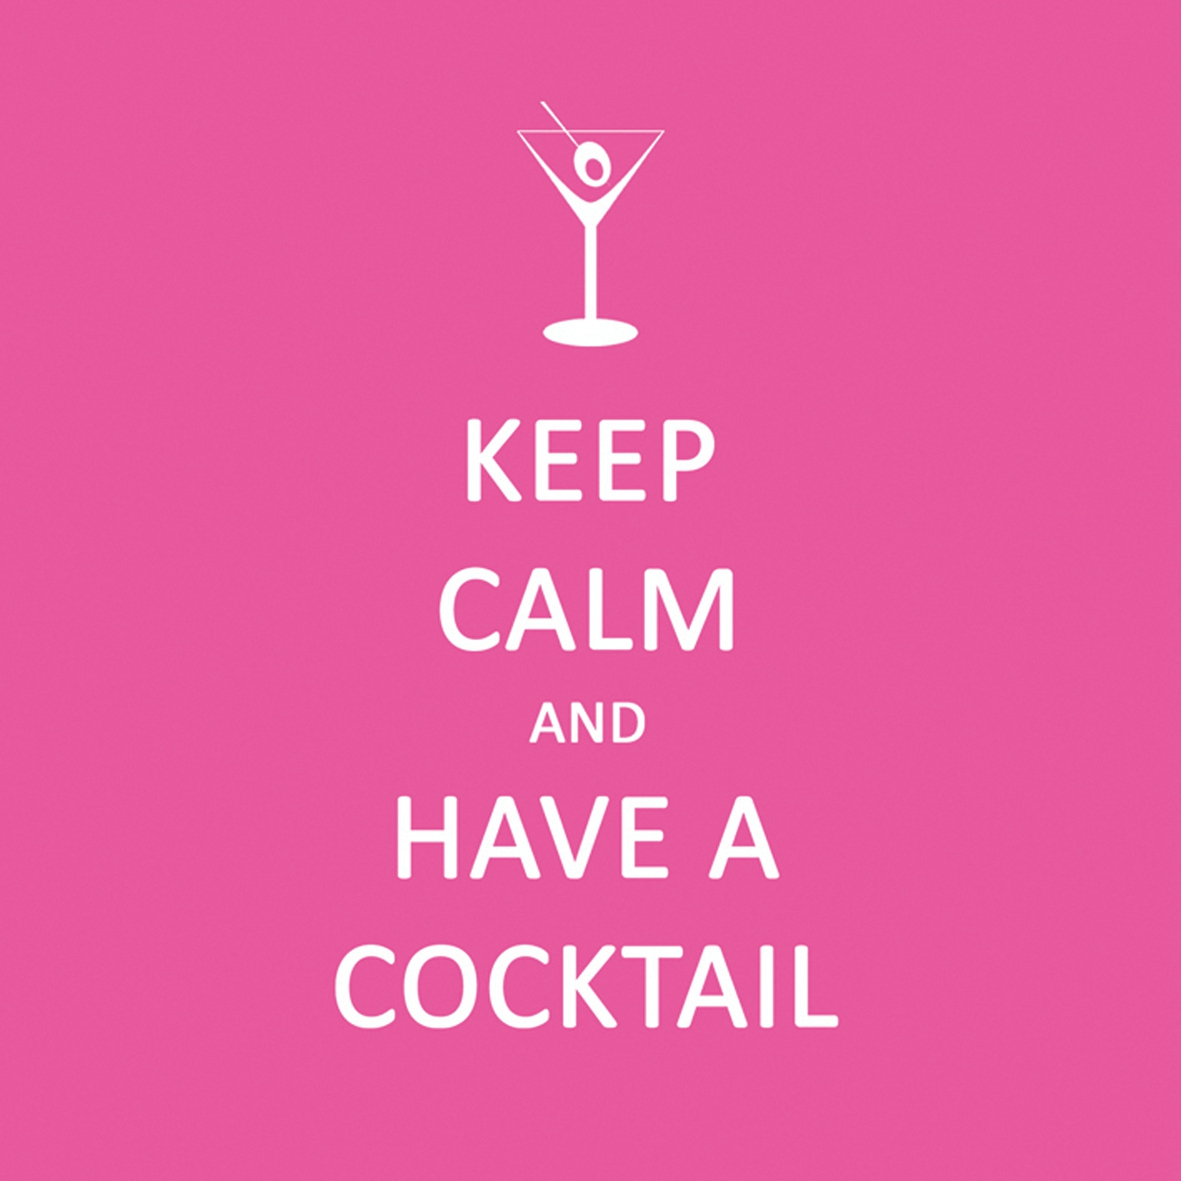 Cocktail Servietten Keep Calm... Cocktail pink